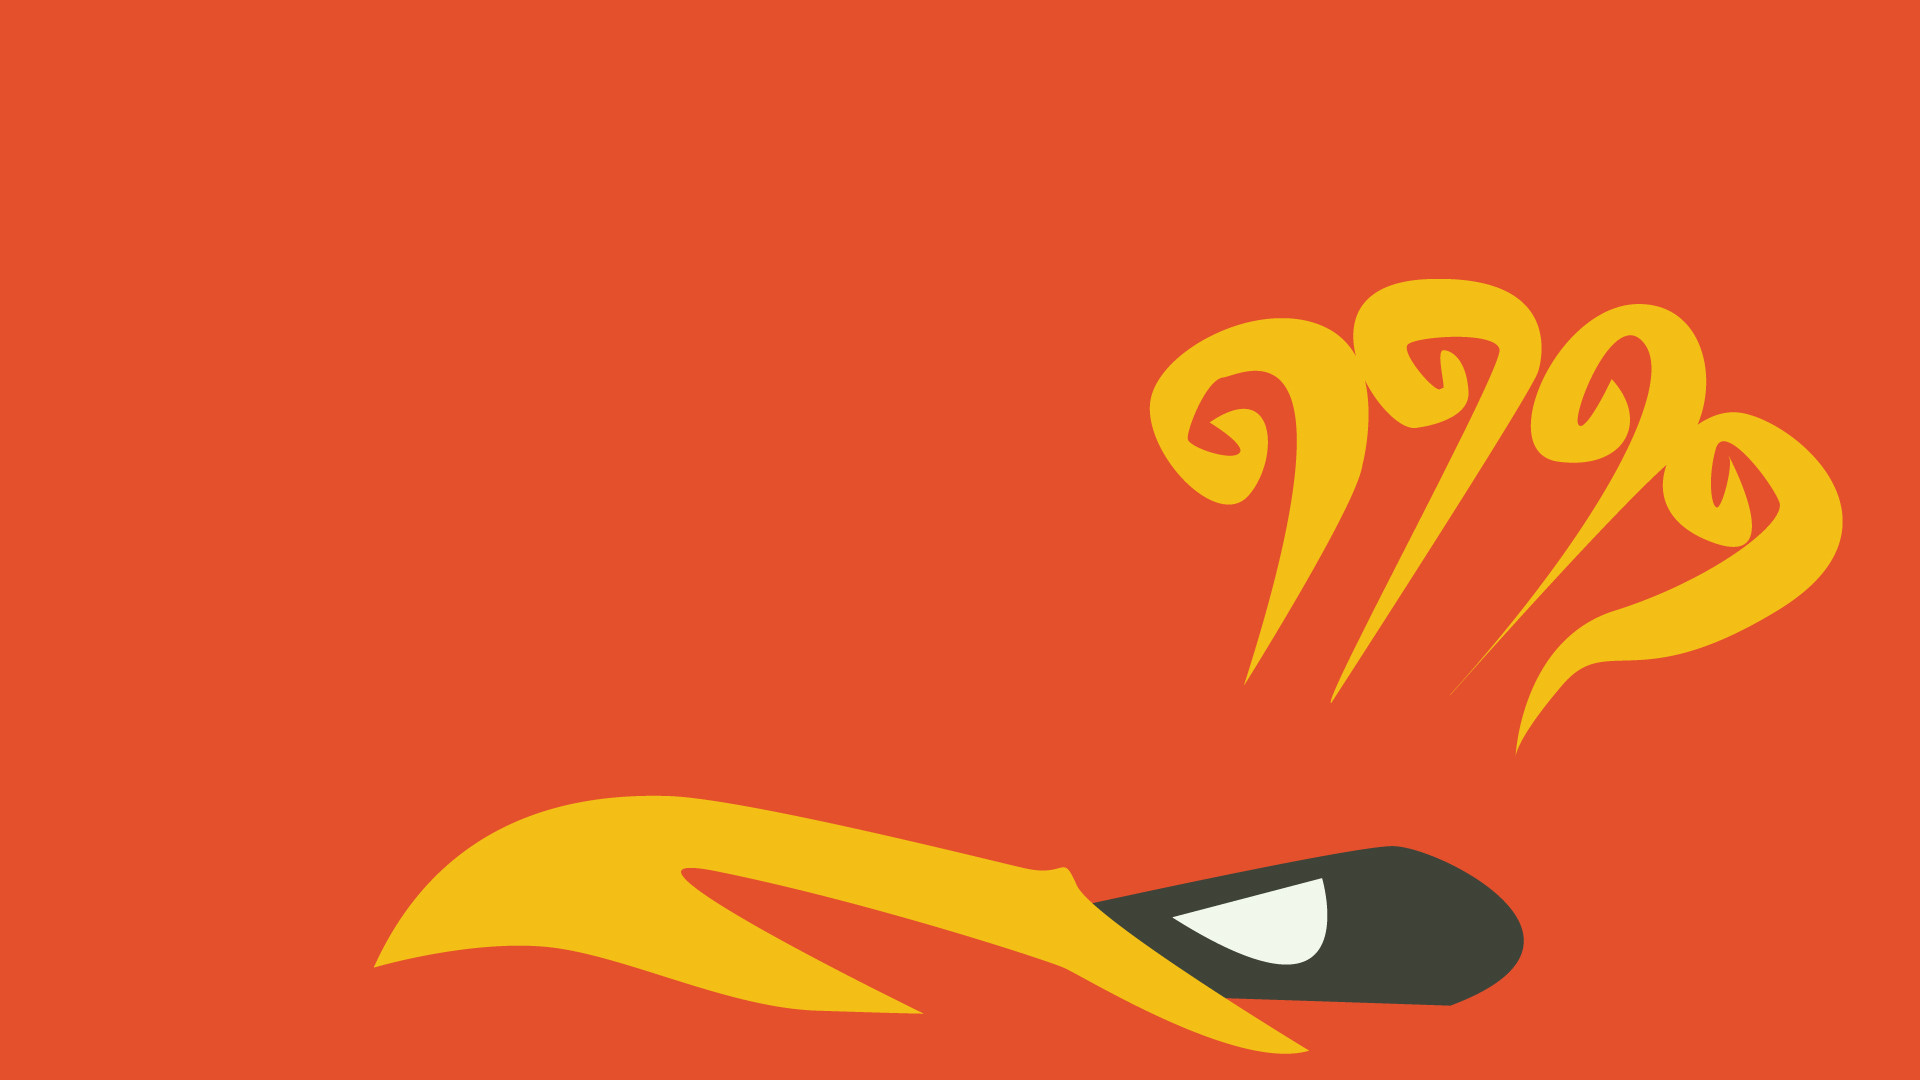 #250 Ho-oh Art, Sprites, & Wallpapers. >